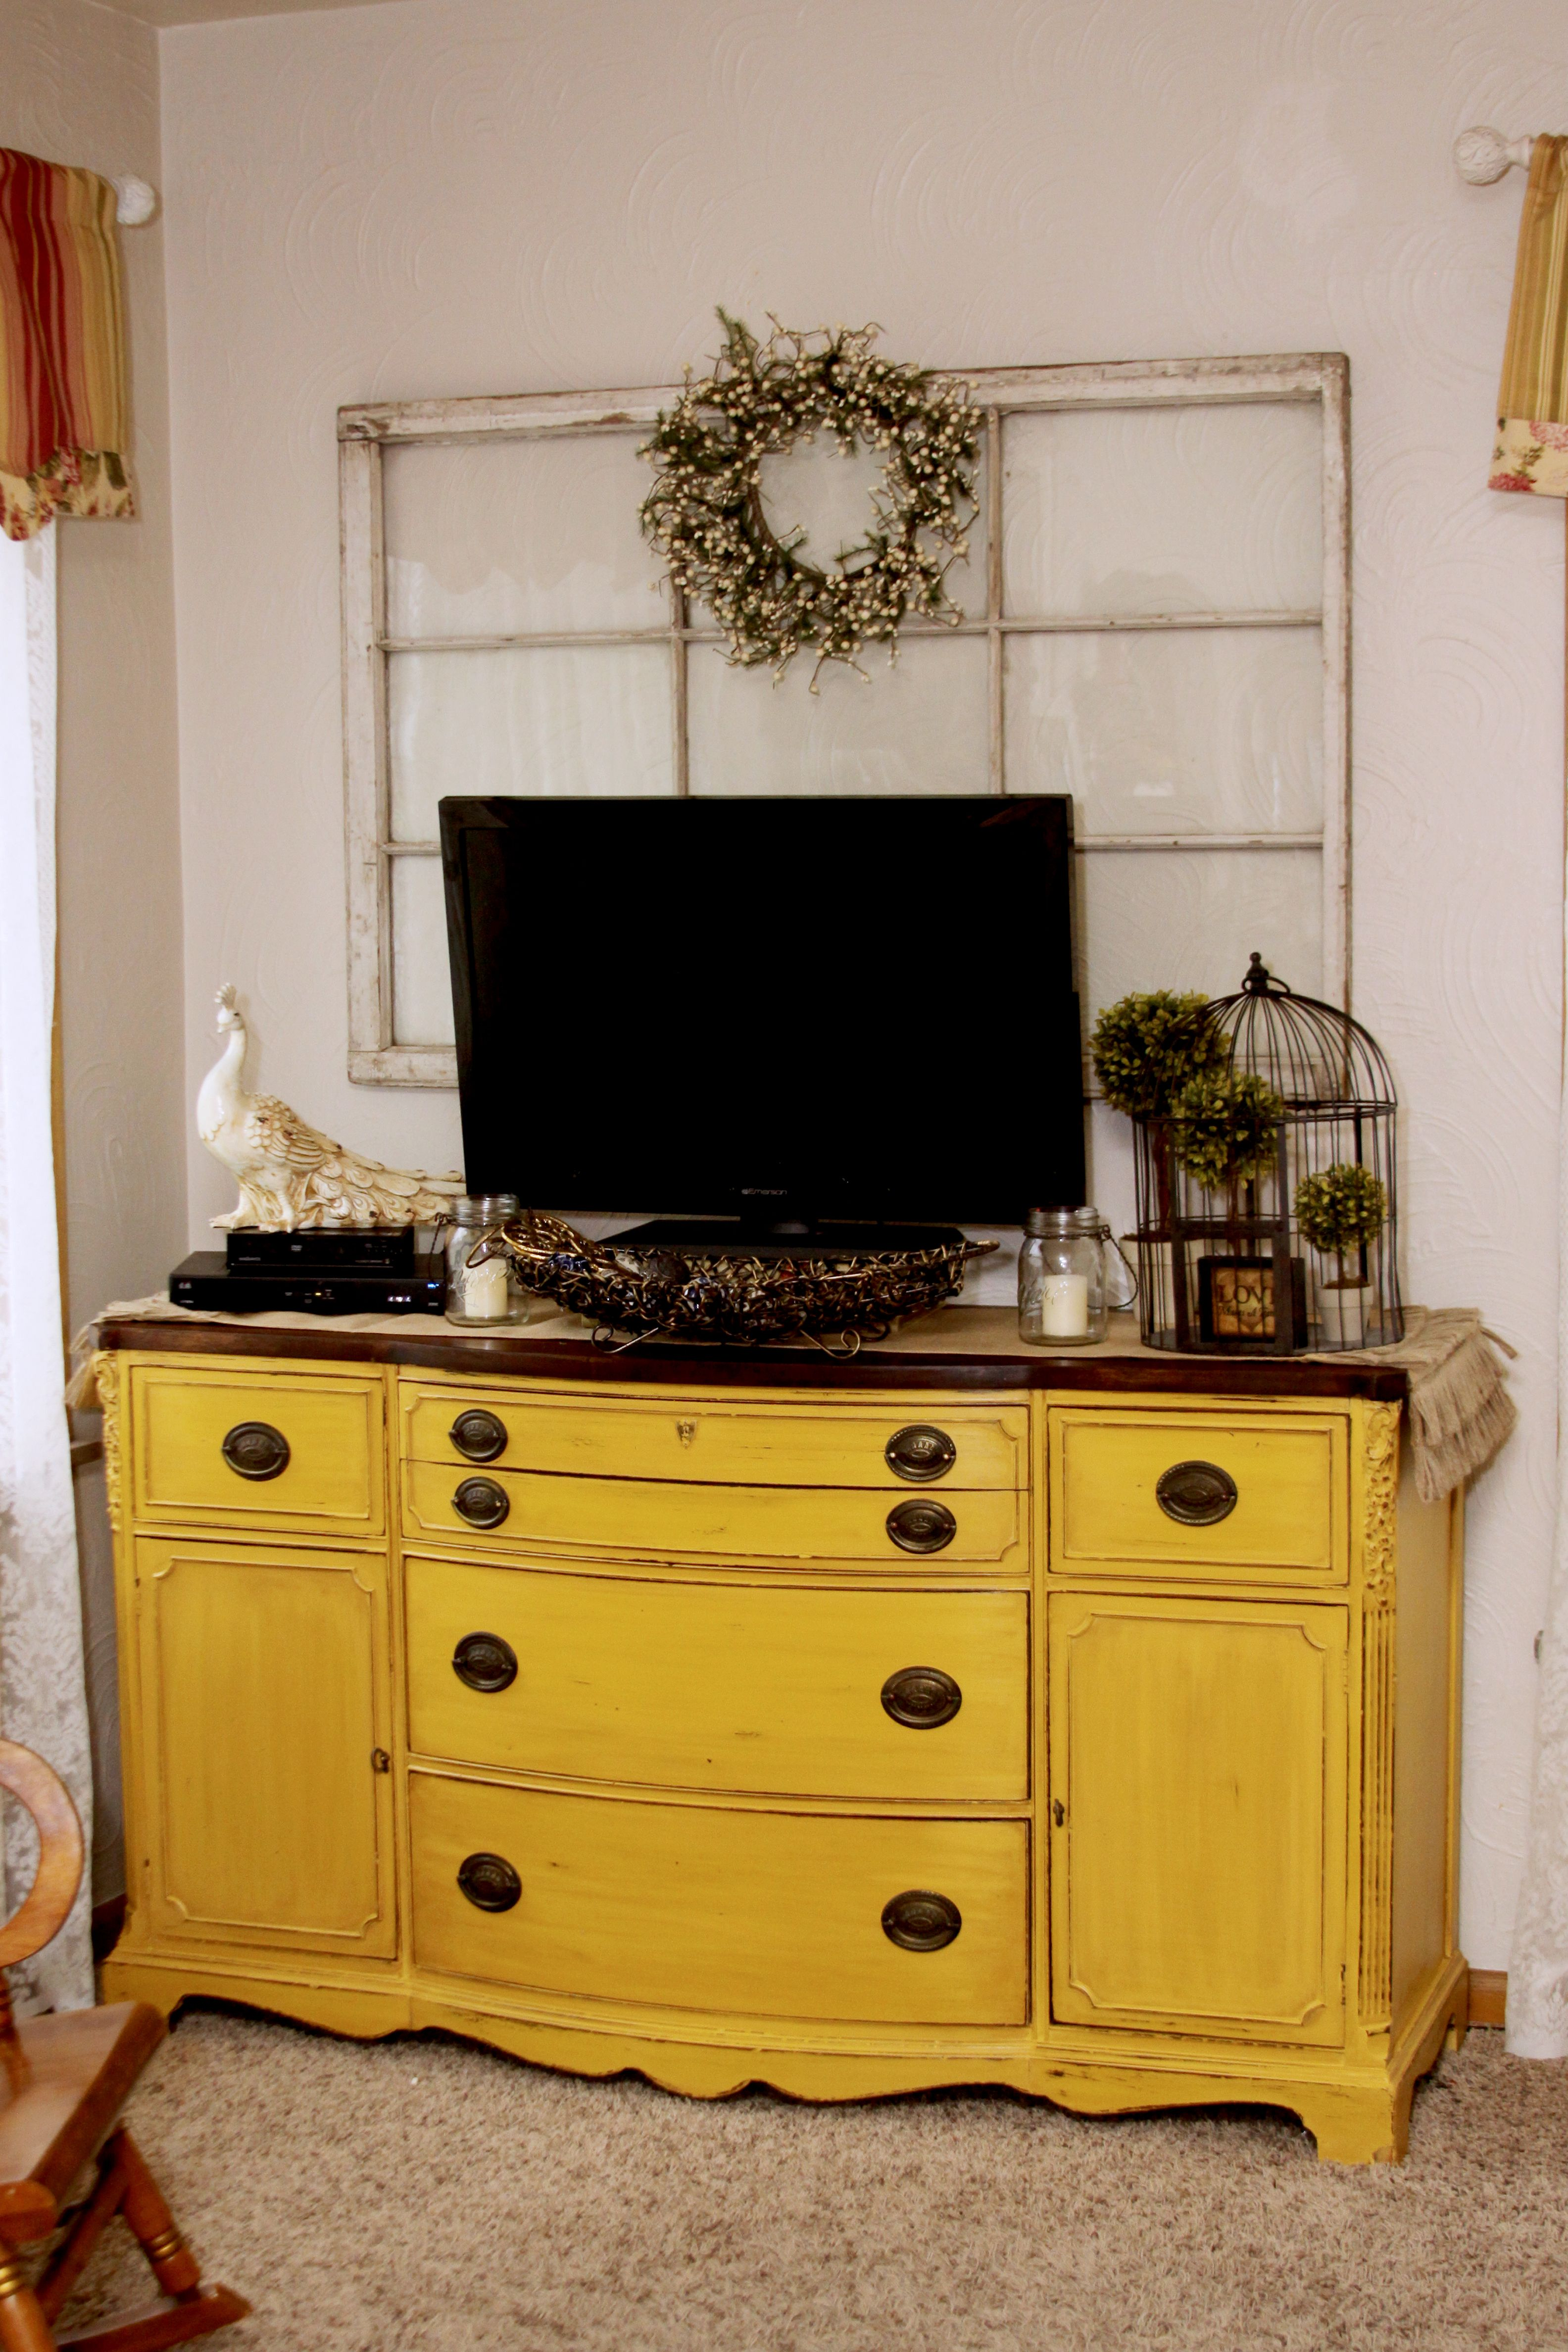 French Country Yellow Painted Furniture Up Cycled Buffet Used As Tv Cabinet I Love The Storage That It Supplies For Dvd S Books